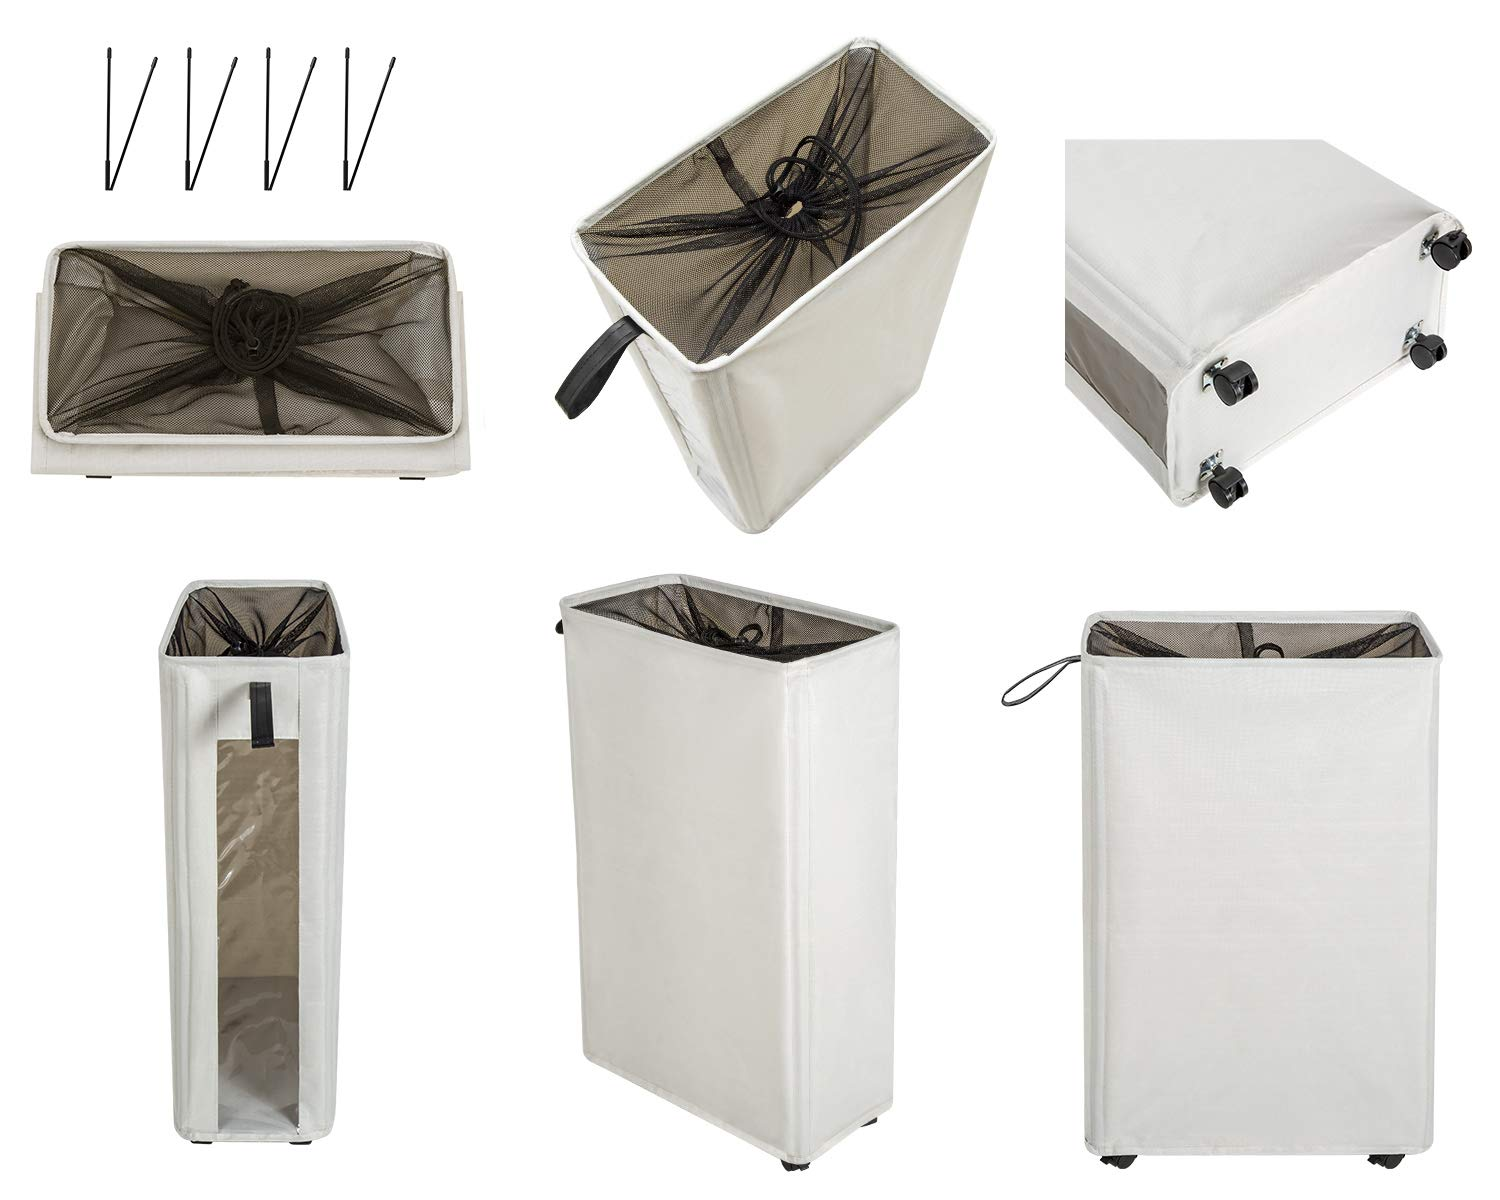 Large Laundry Basket Foldable Slim Laundry Hamper on Wheels Tall Clear Window Visible Dirty Clothes Basket Thin Clothes Storage Standable Corner Bin Handy 16/×8.6/×27 Beige